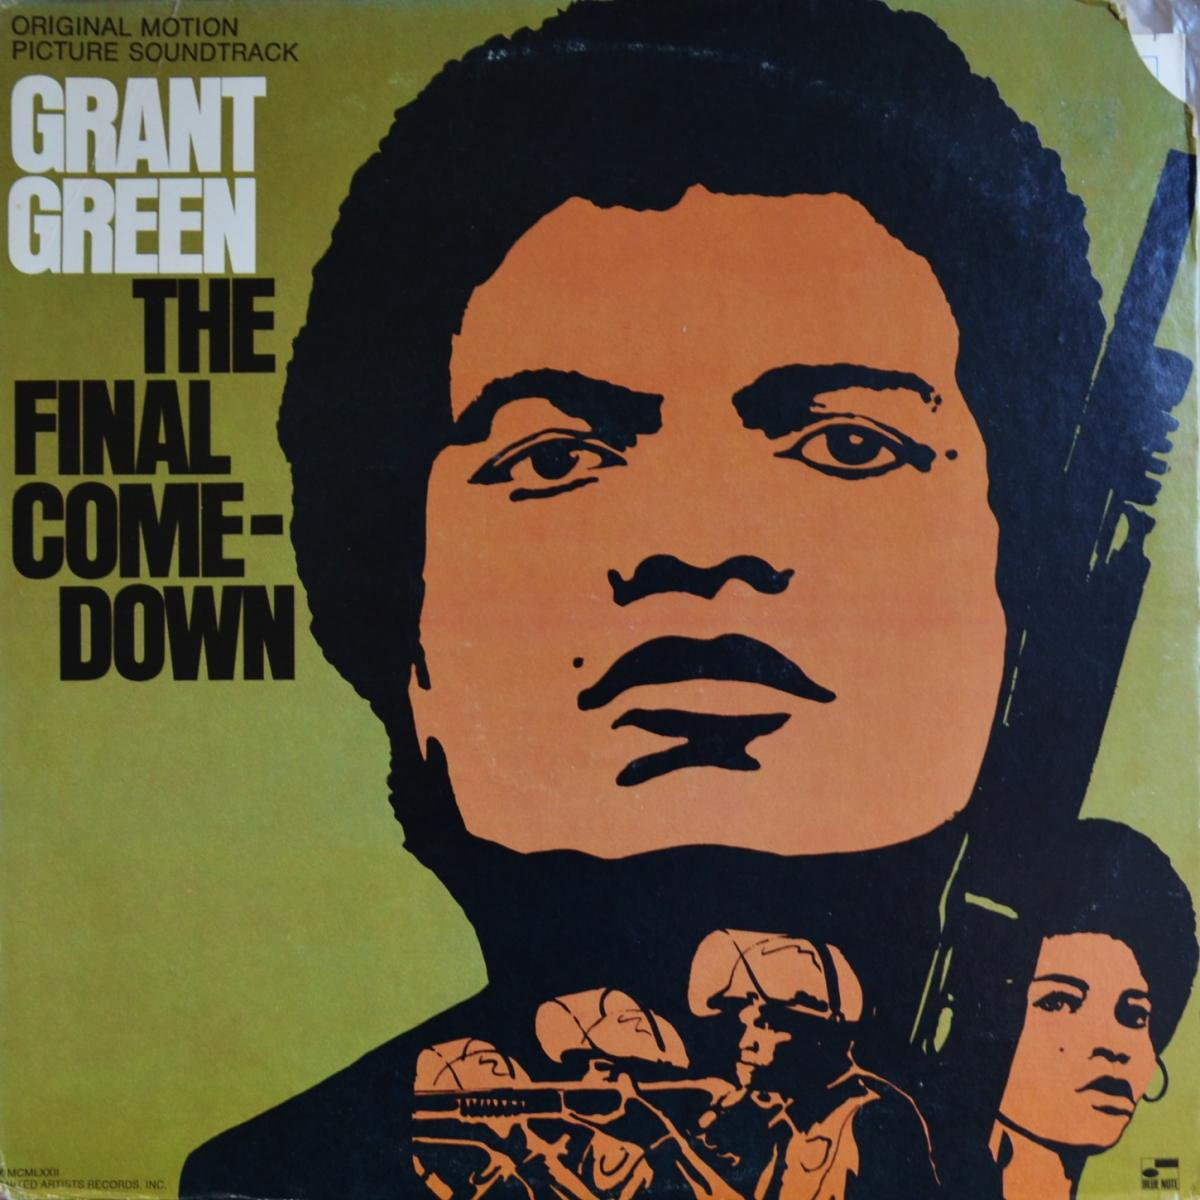 GRANT GREEN / THE FINAL COMEDOWN (LP)